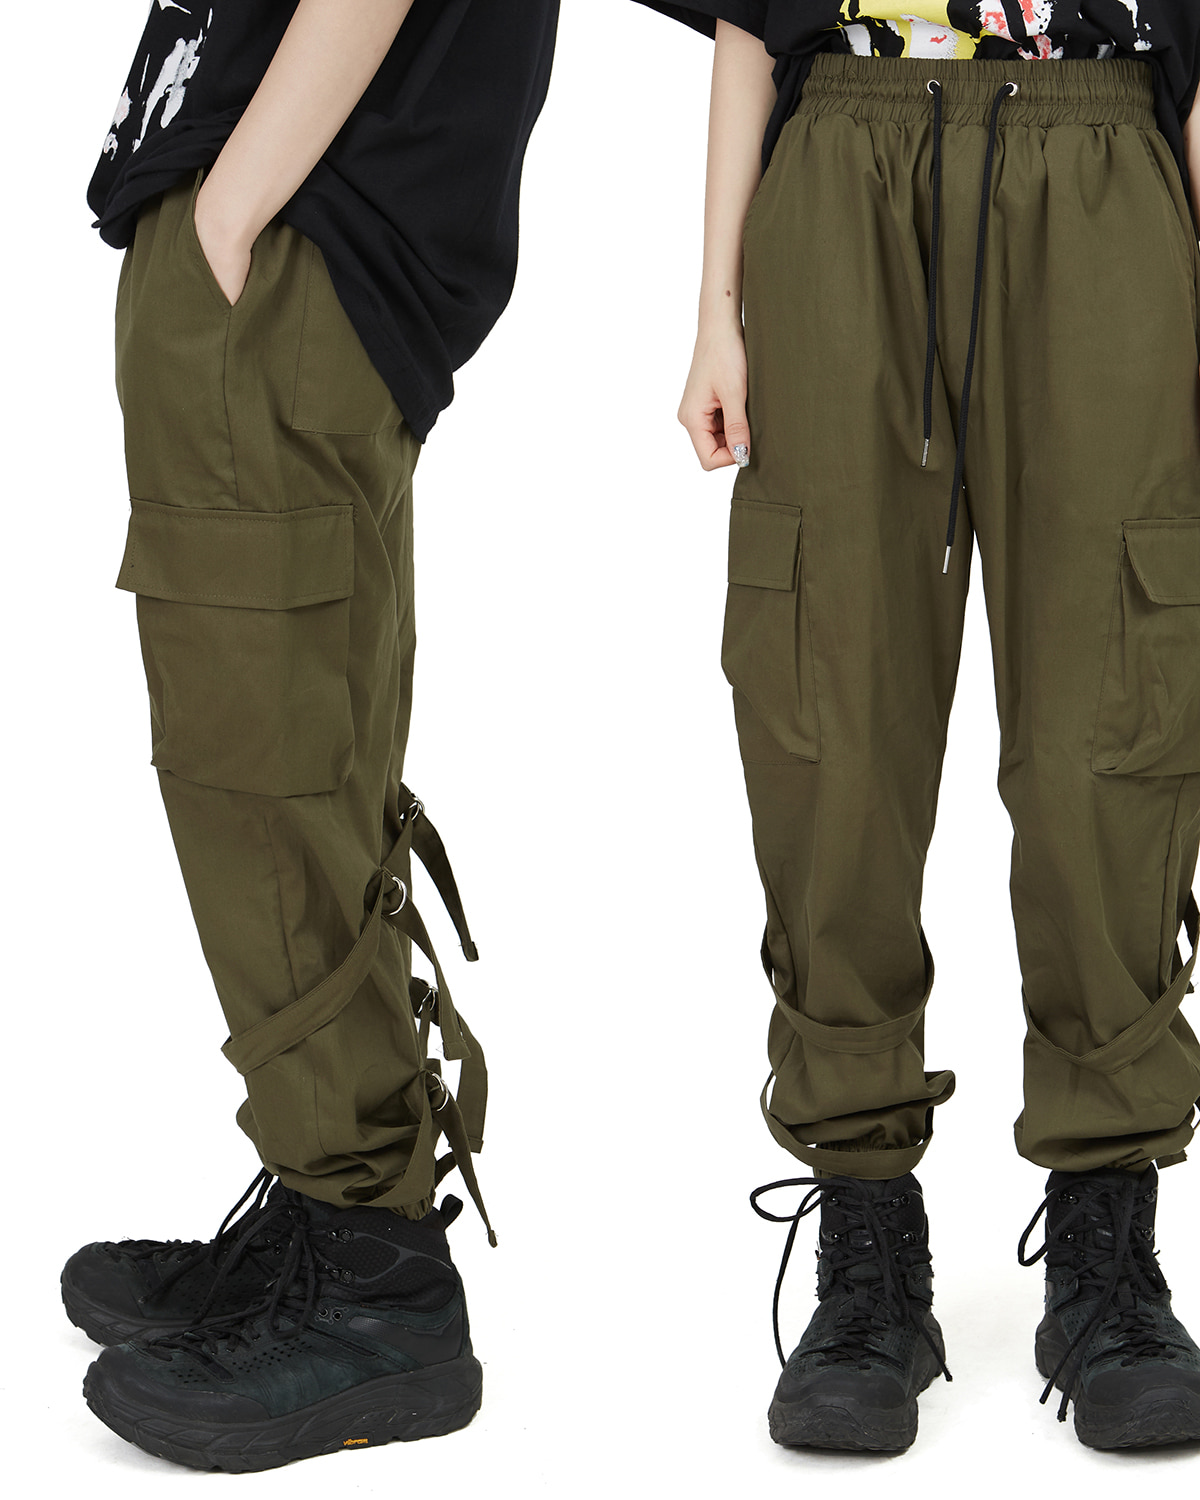 raucohouse-LOOP D-RING CARGO PANTS - RAUCO HOUSE♡韓國男裝褲子